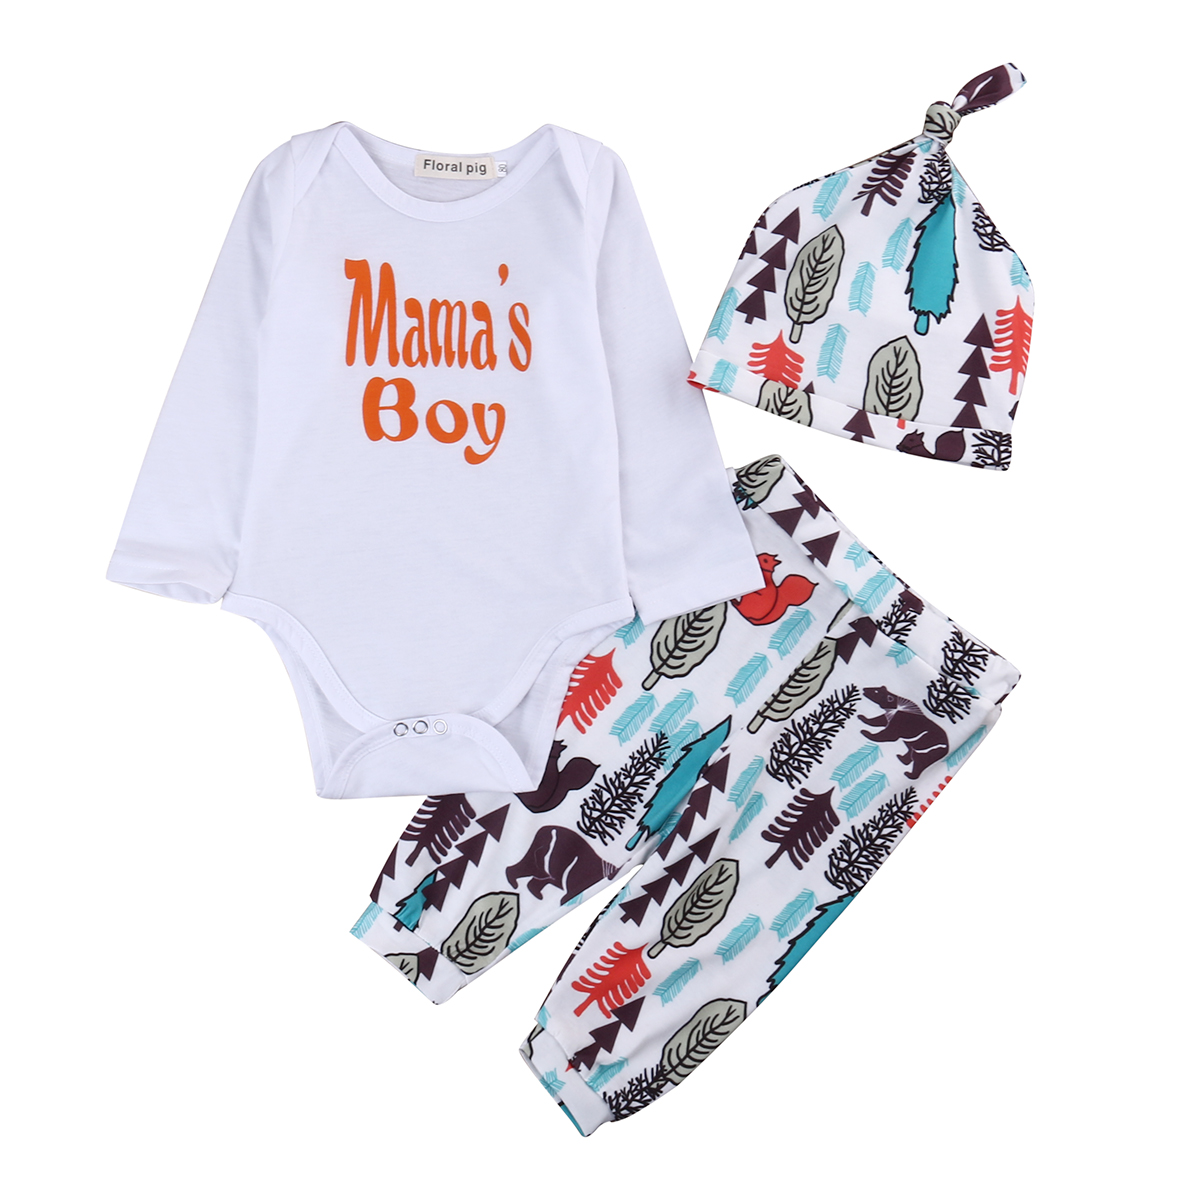 2016 Autumn Fashion baby boy girl clothes set cotton long sleeved t-shirt+pants newborn infant 2pcs suit baby girl clothing sets